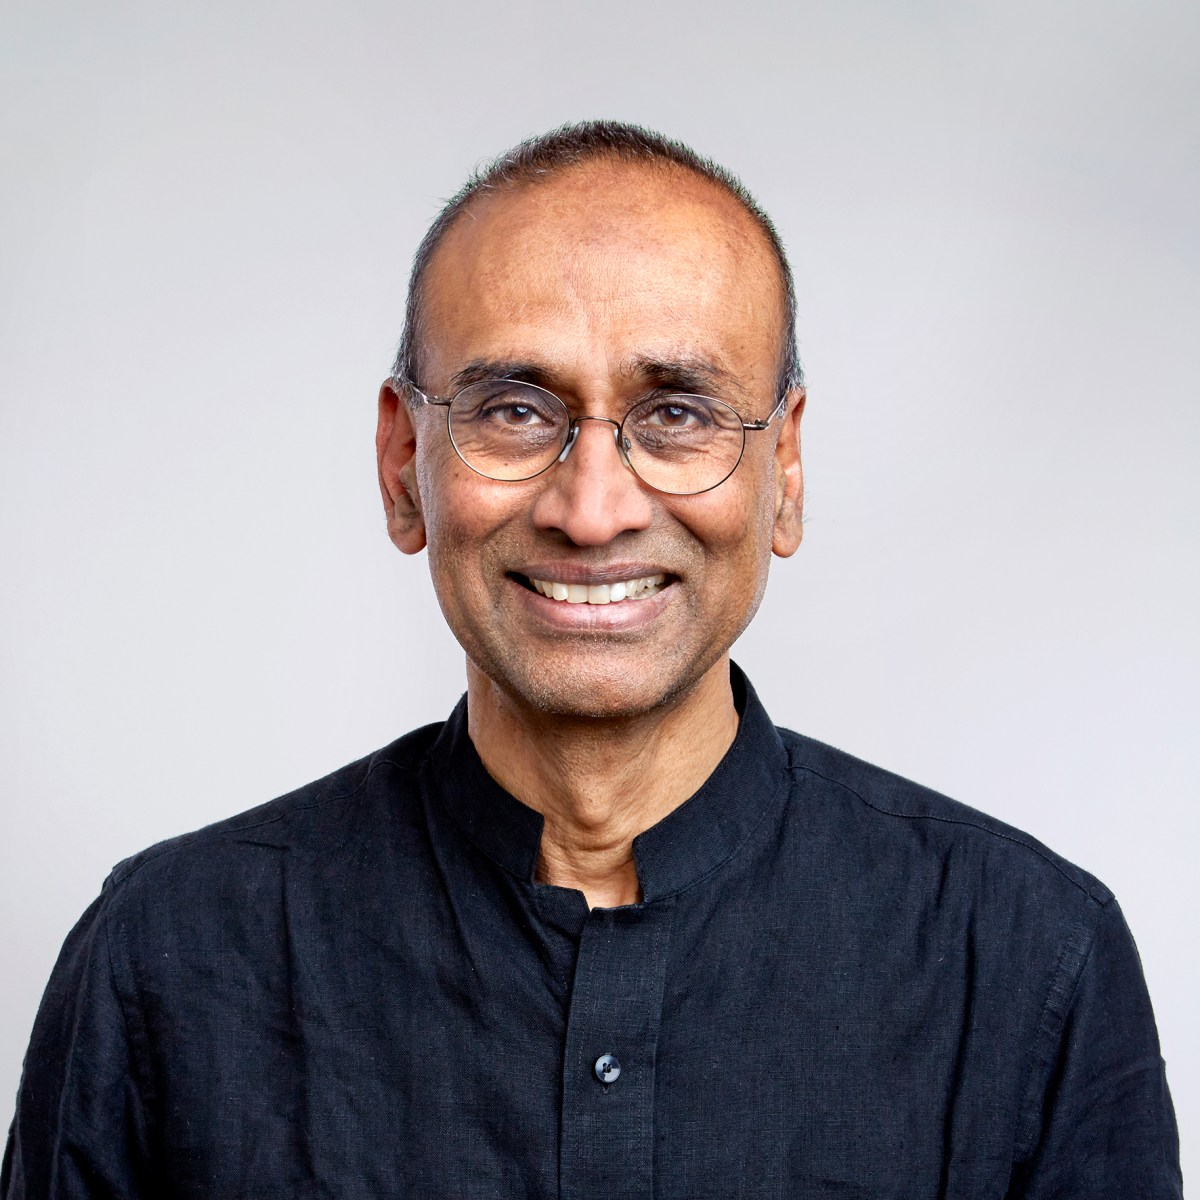 Venki Ramakrishnan, Fellow of Trinity College, Nobel Prize 2009, President of the Royal Society, Deputy Director of the MRC Laboratory of Molecular Biology at Cambridge.